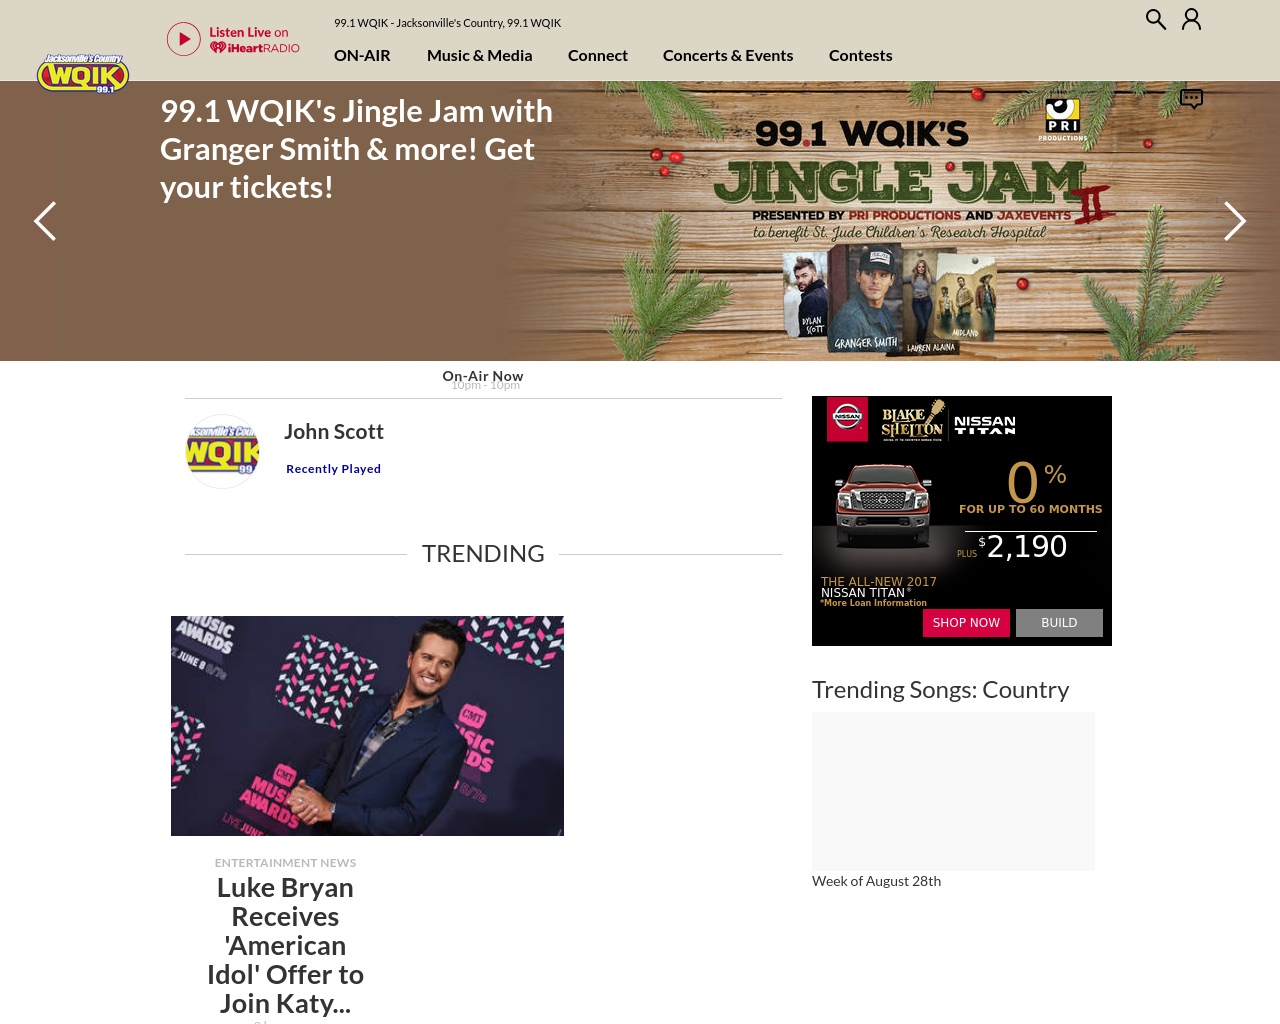 Jacksonville's-Country-99.1WQIK-Advertising-Reviews-Pricing